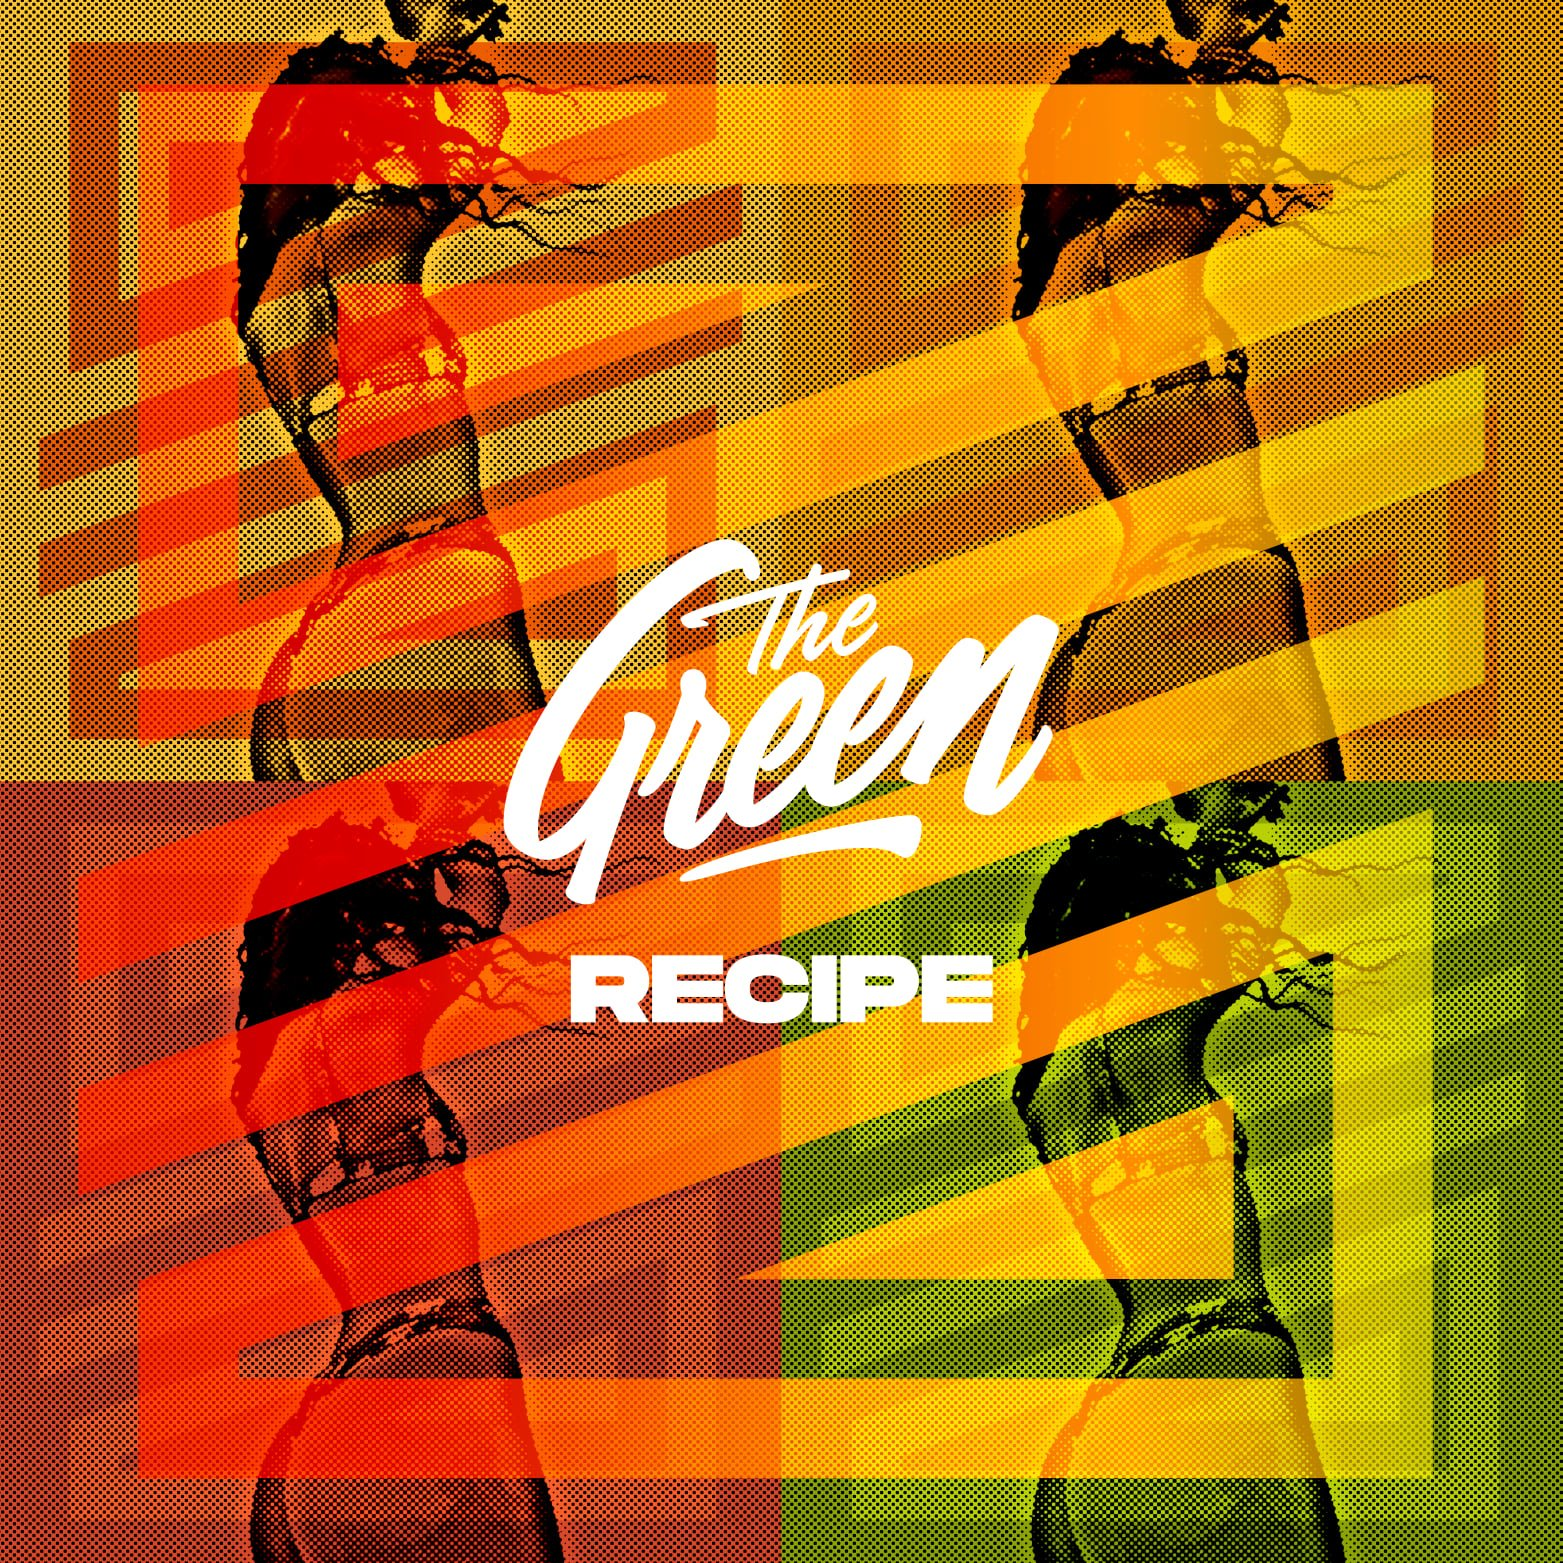 NEW SINGLES AND VIDEOS FROM THE GREEN